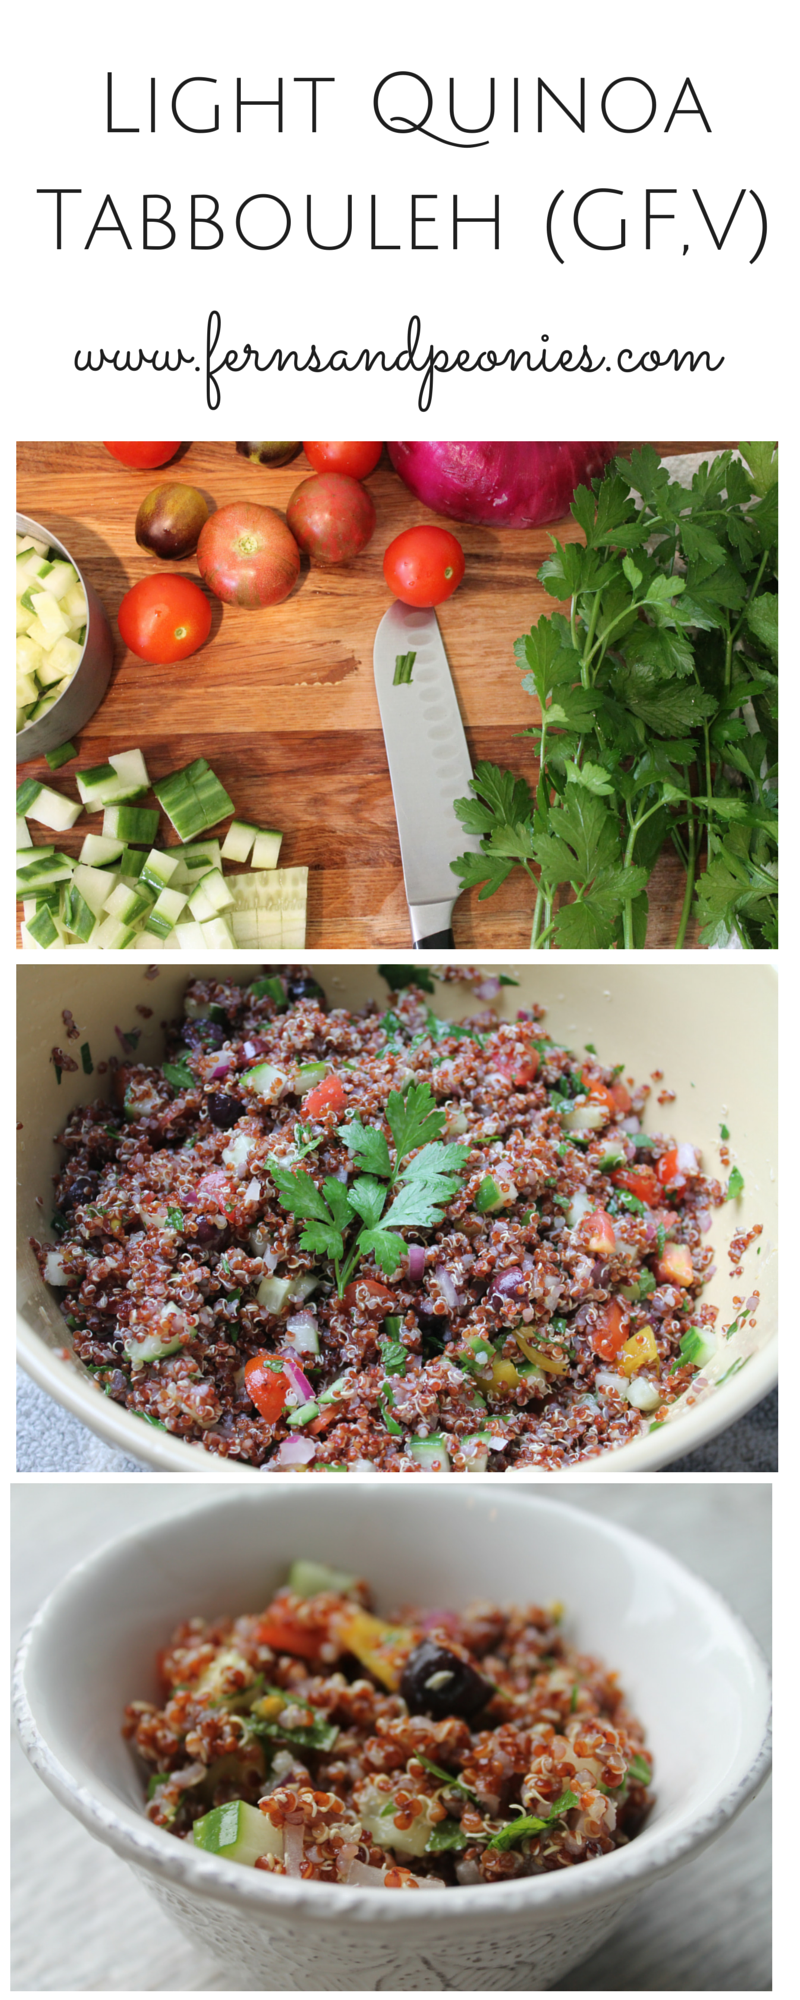 Light Quinoa Tabbouleh Salad (GF,V) from fernsandpeonies.com